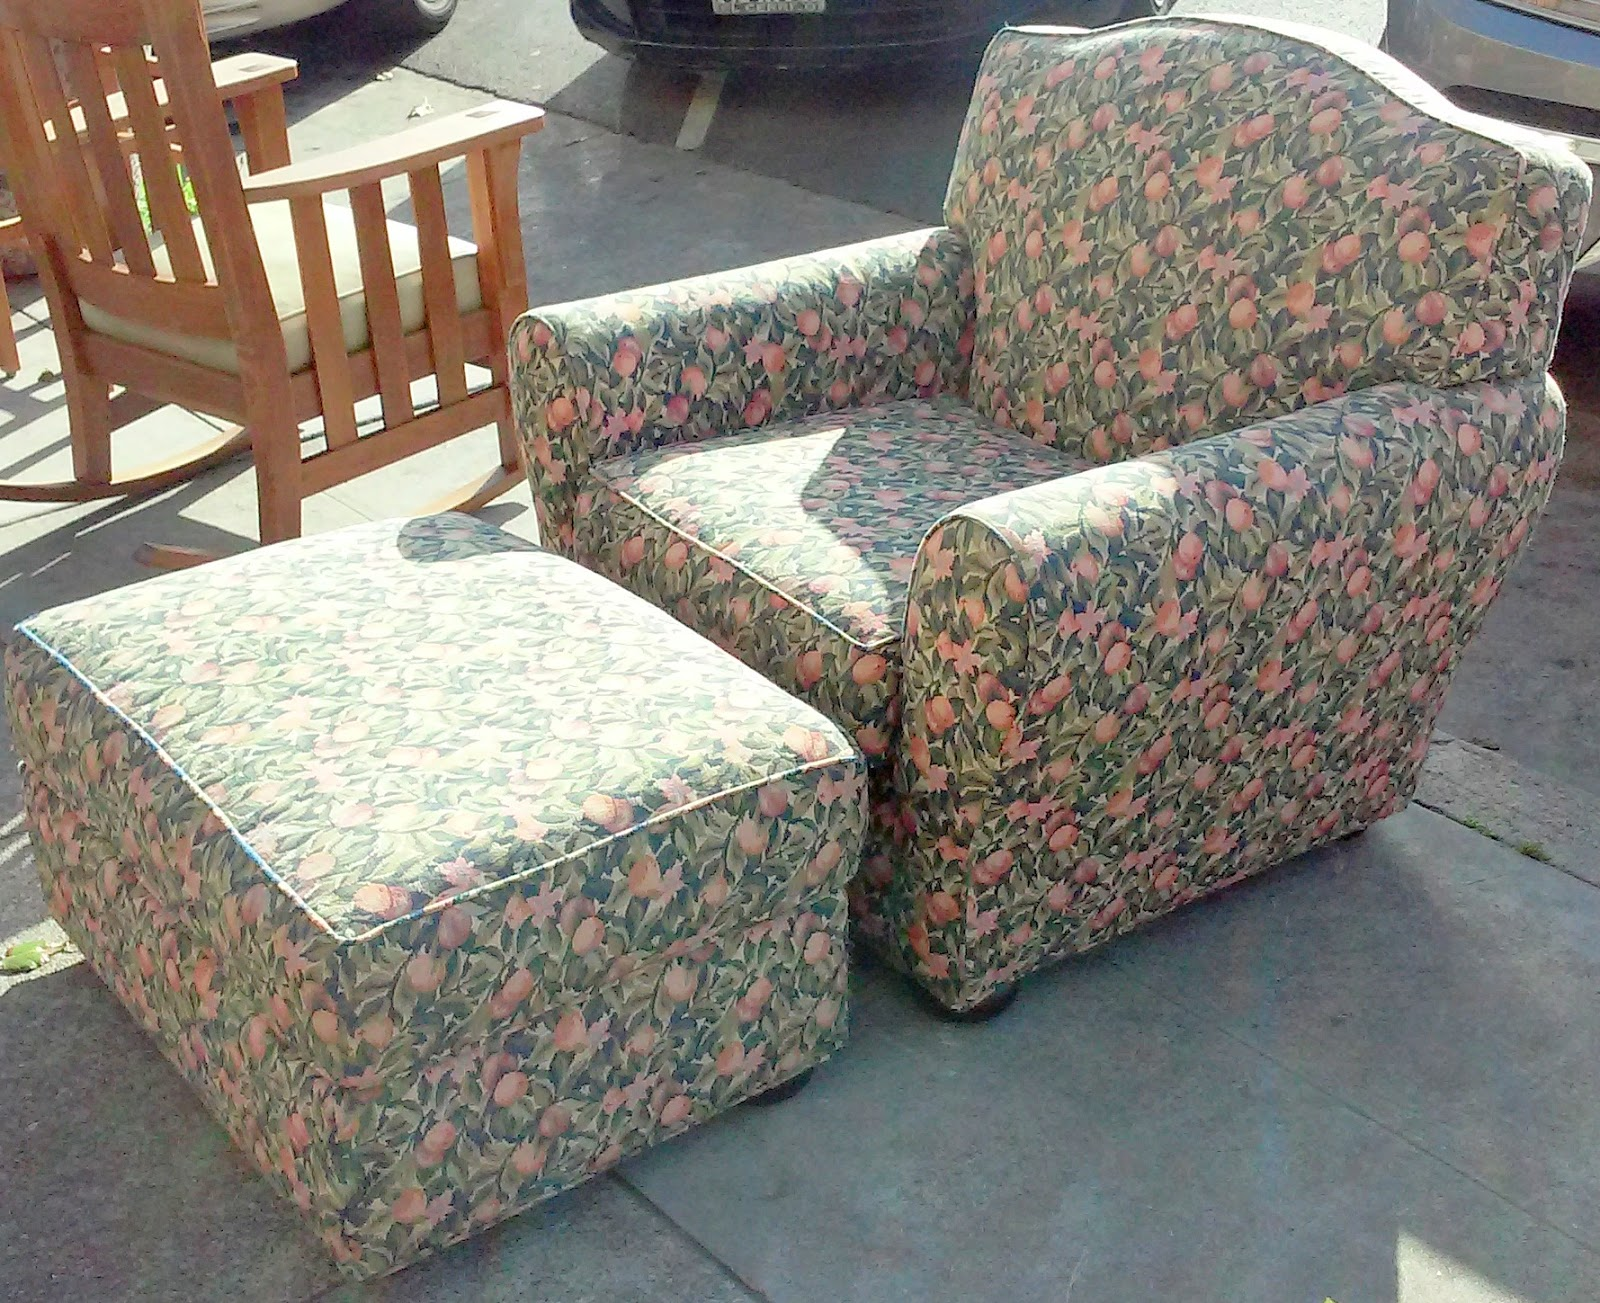 Uhuru furniture collectibles sold reduced peachy for Furniture 80s band